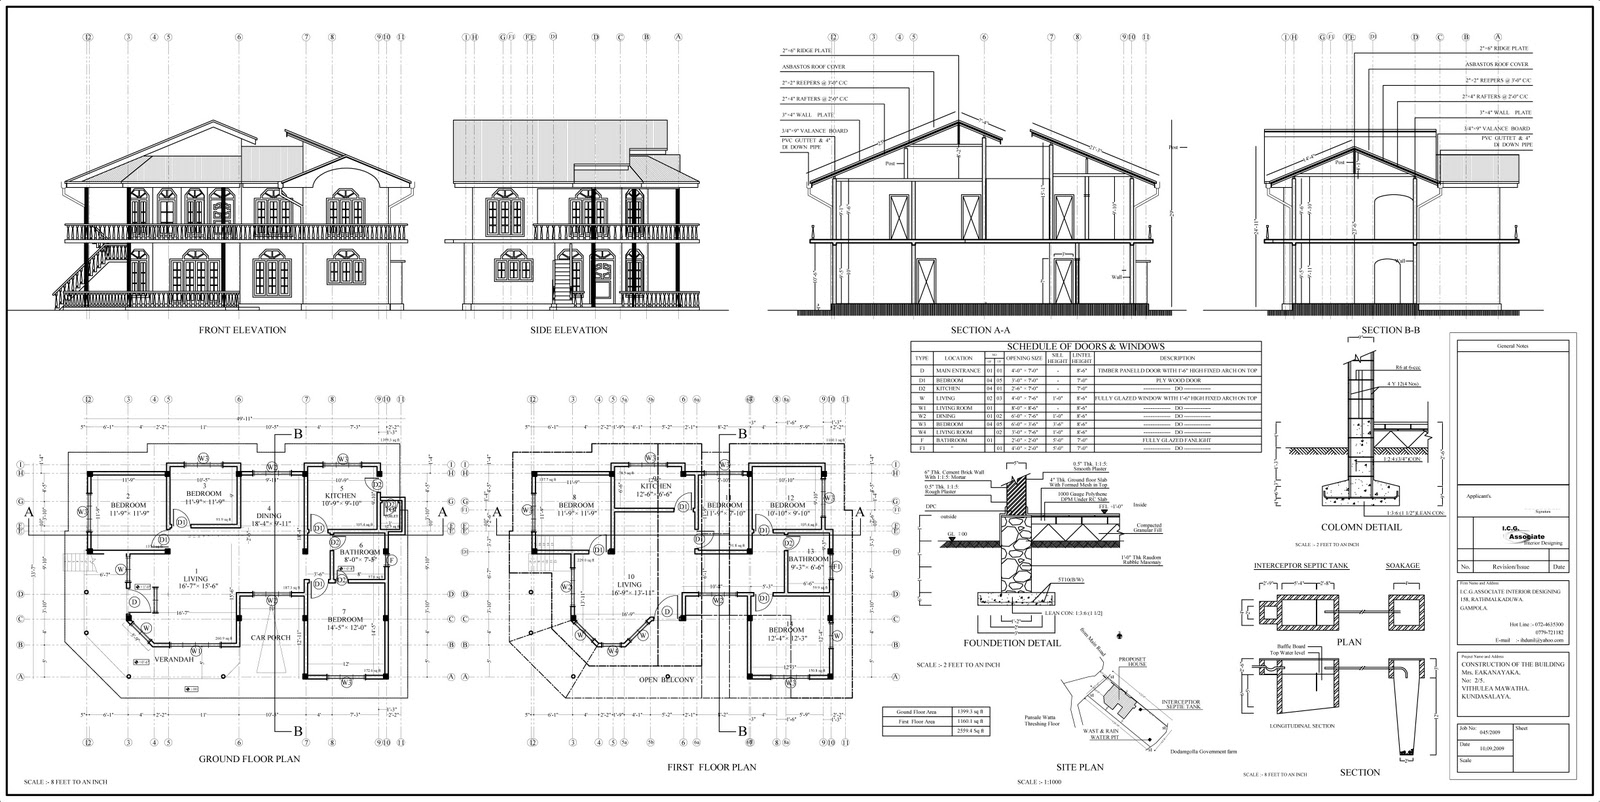 Vajira house plan sri lanka joy studio design gallery for Sri lanka house plans designs